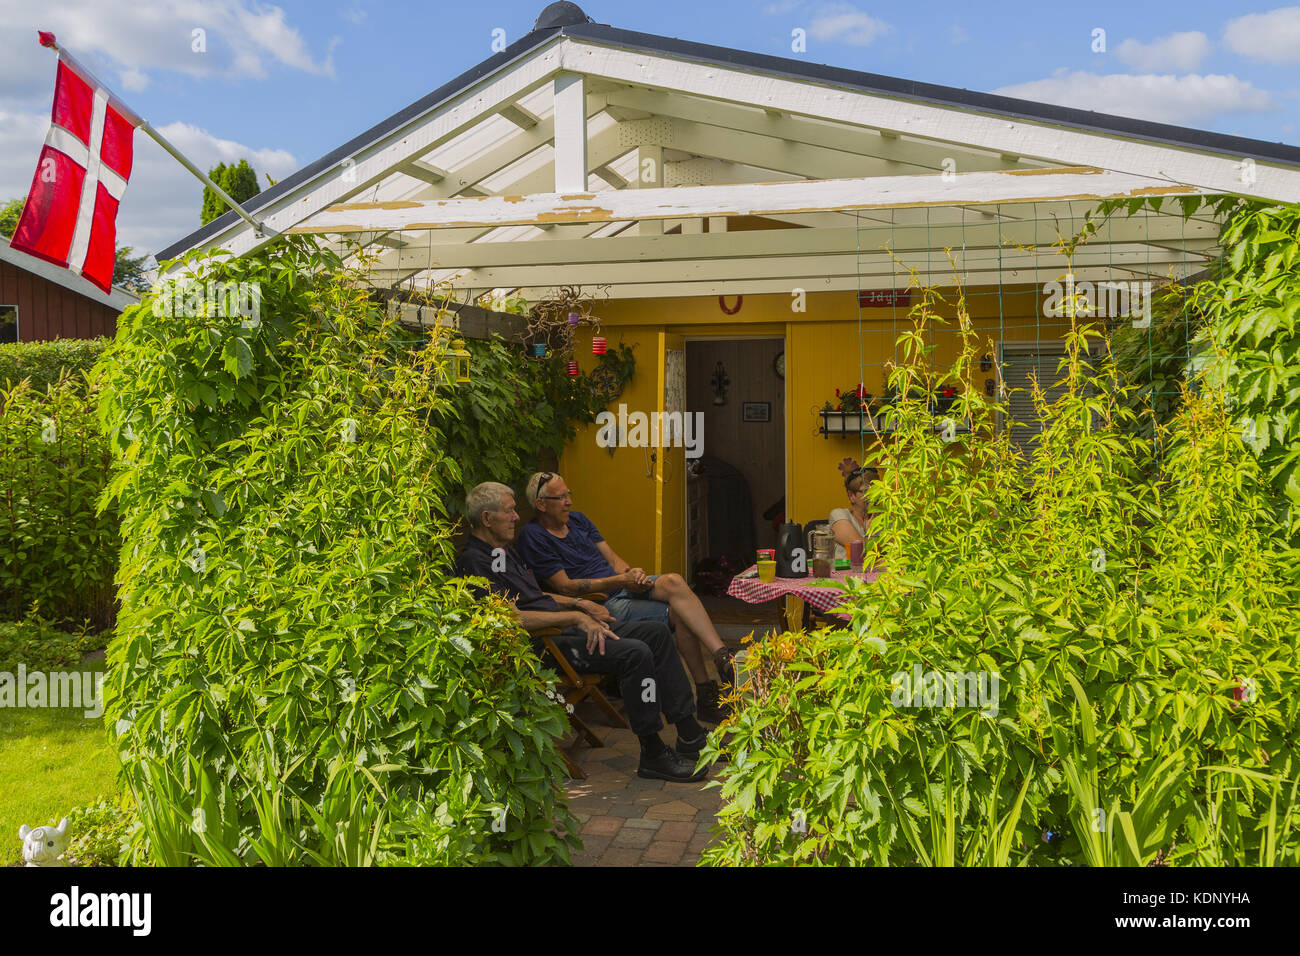 Danish 'cozy' a summer day in the allotment. The flag shows joy and party on a day off with friends.Dansk - Stock Image